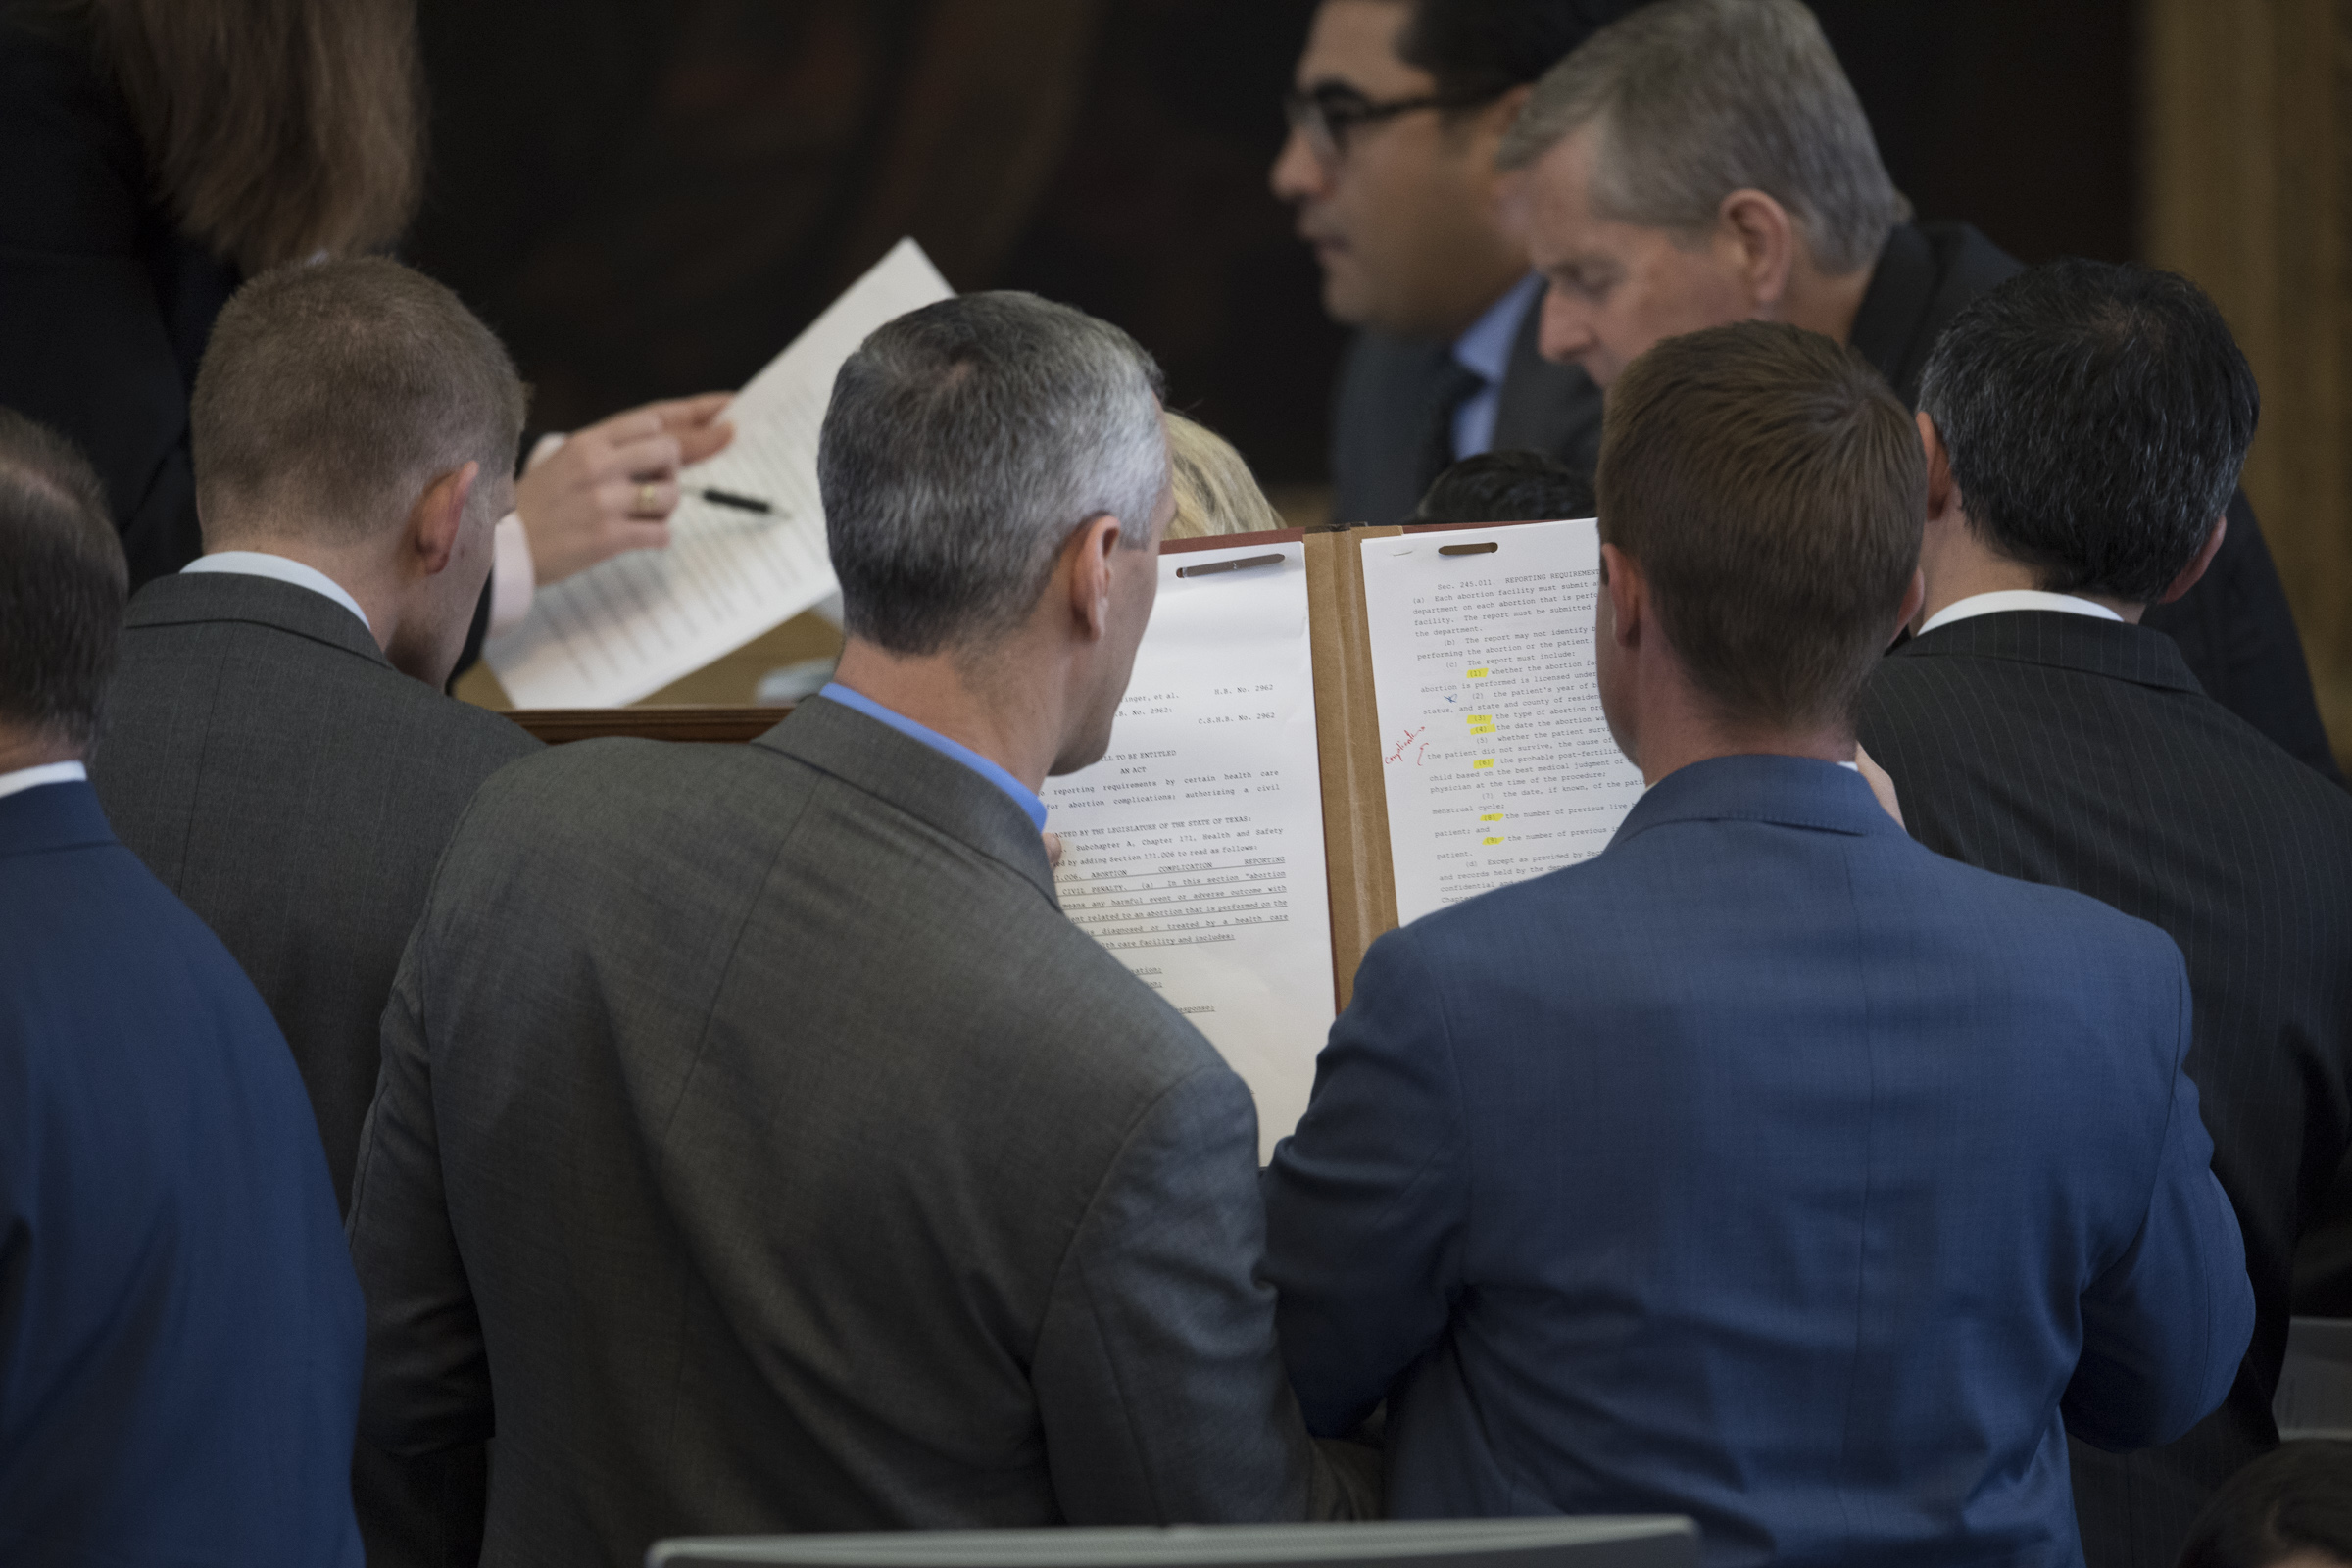 2:49 p.m.  State Reps. Matt Schaefer and Jeff Leach, both members of the conservative Texas Freedom Caucus looking at House bills as lawmakers settle in for a long day with a midnight deadline to pass bills out of the chamber.